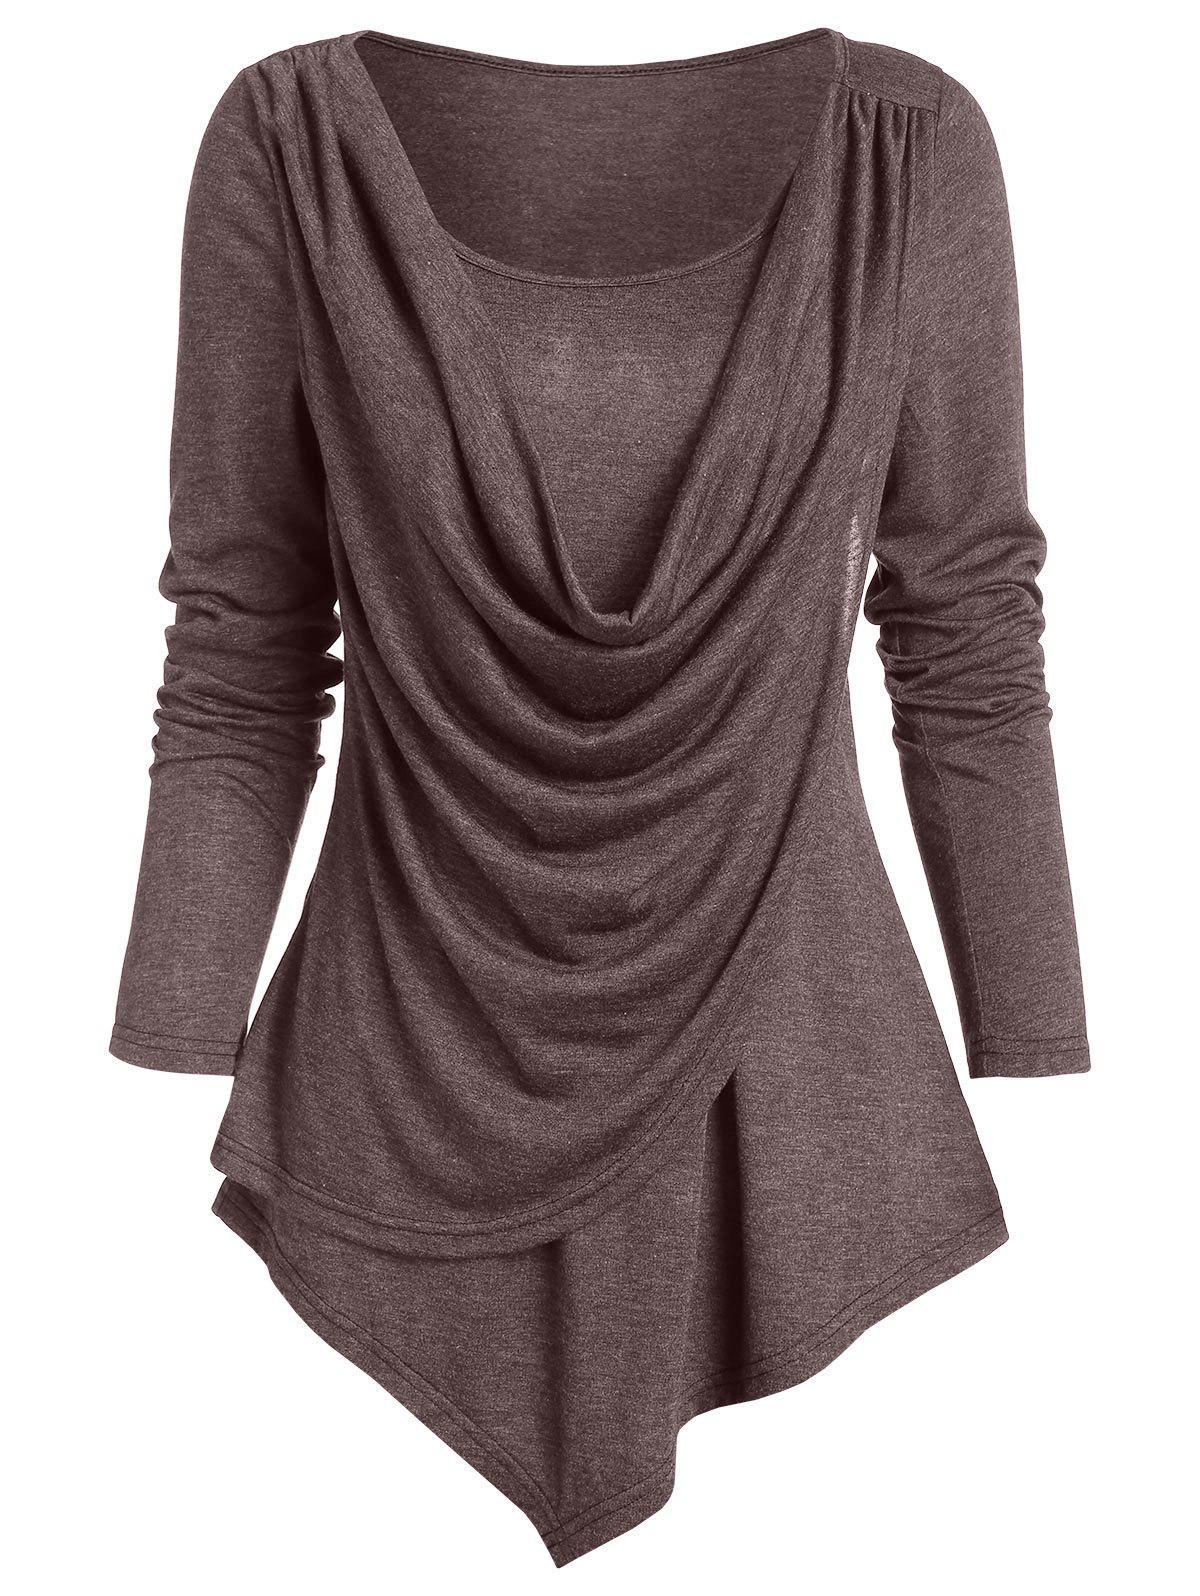 Pointed Hem Heathered Draped Overlap T-shirt - BROWN BEAR XL